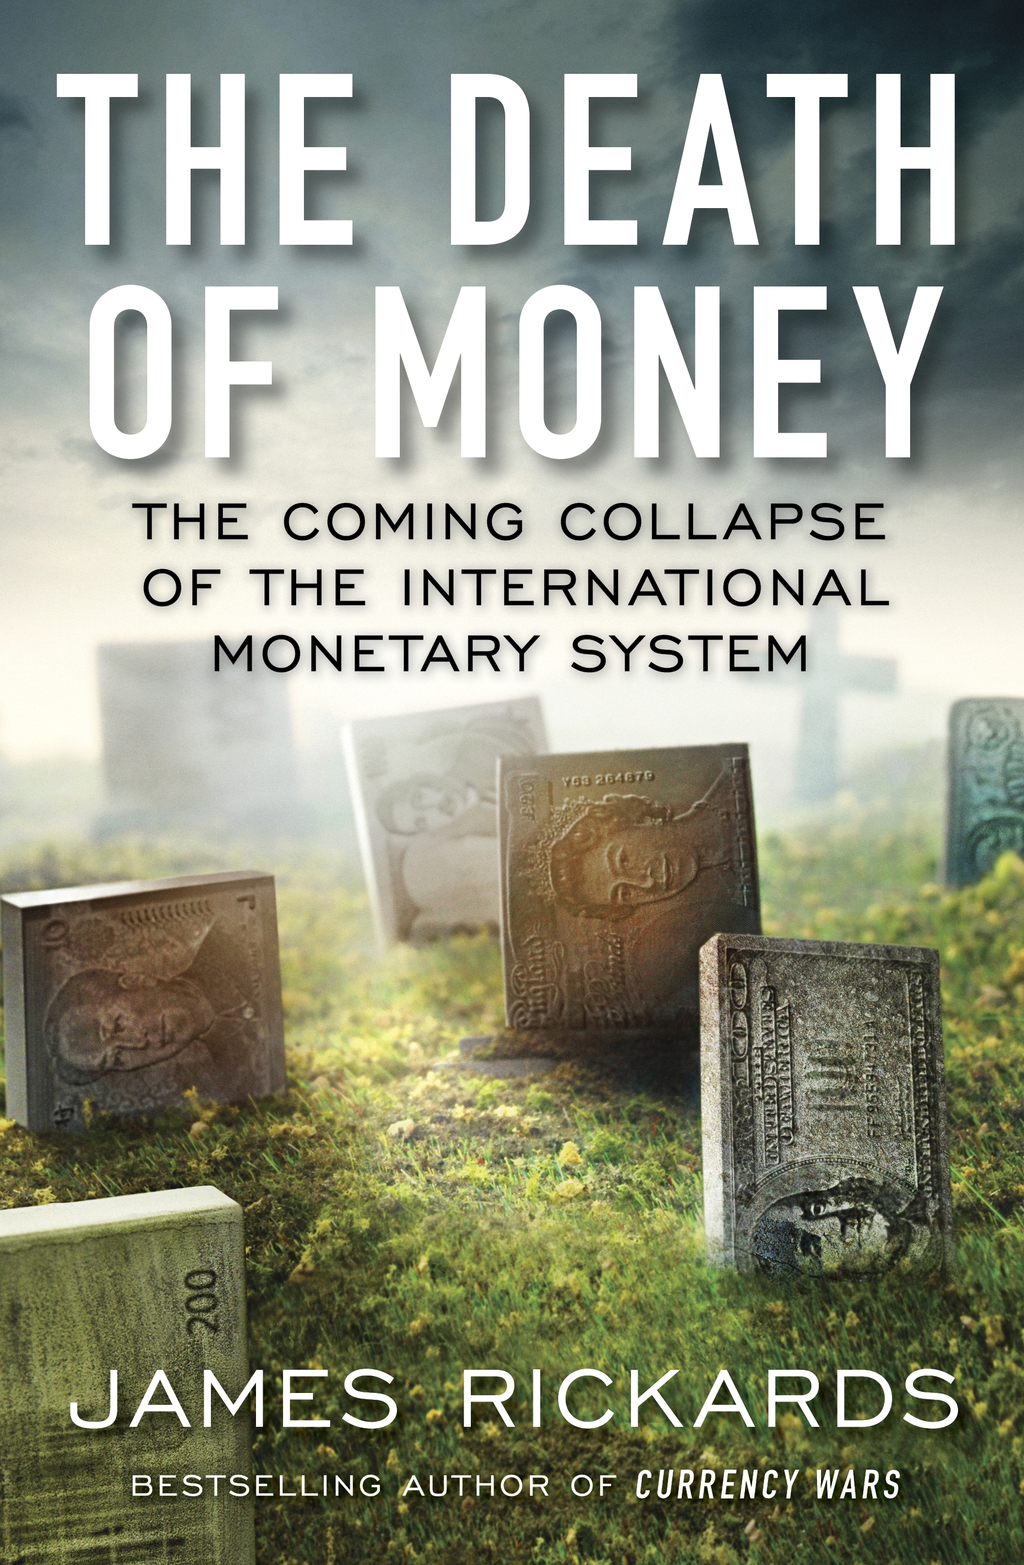 The Death of Money The Coming Collapse of the International Monetary System